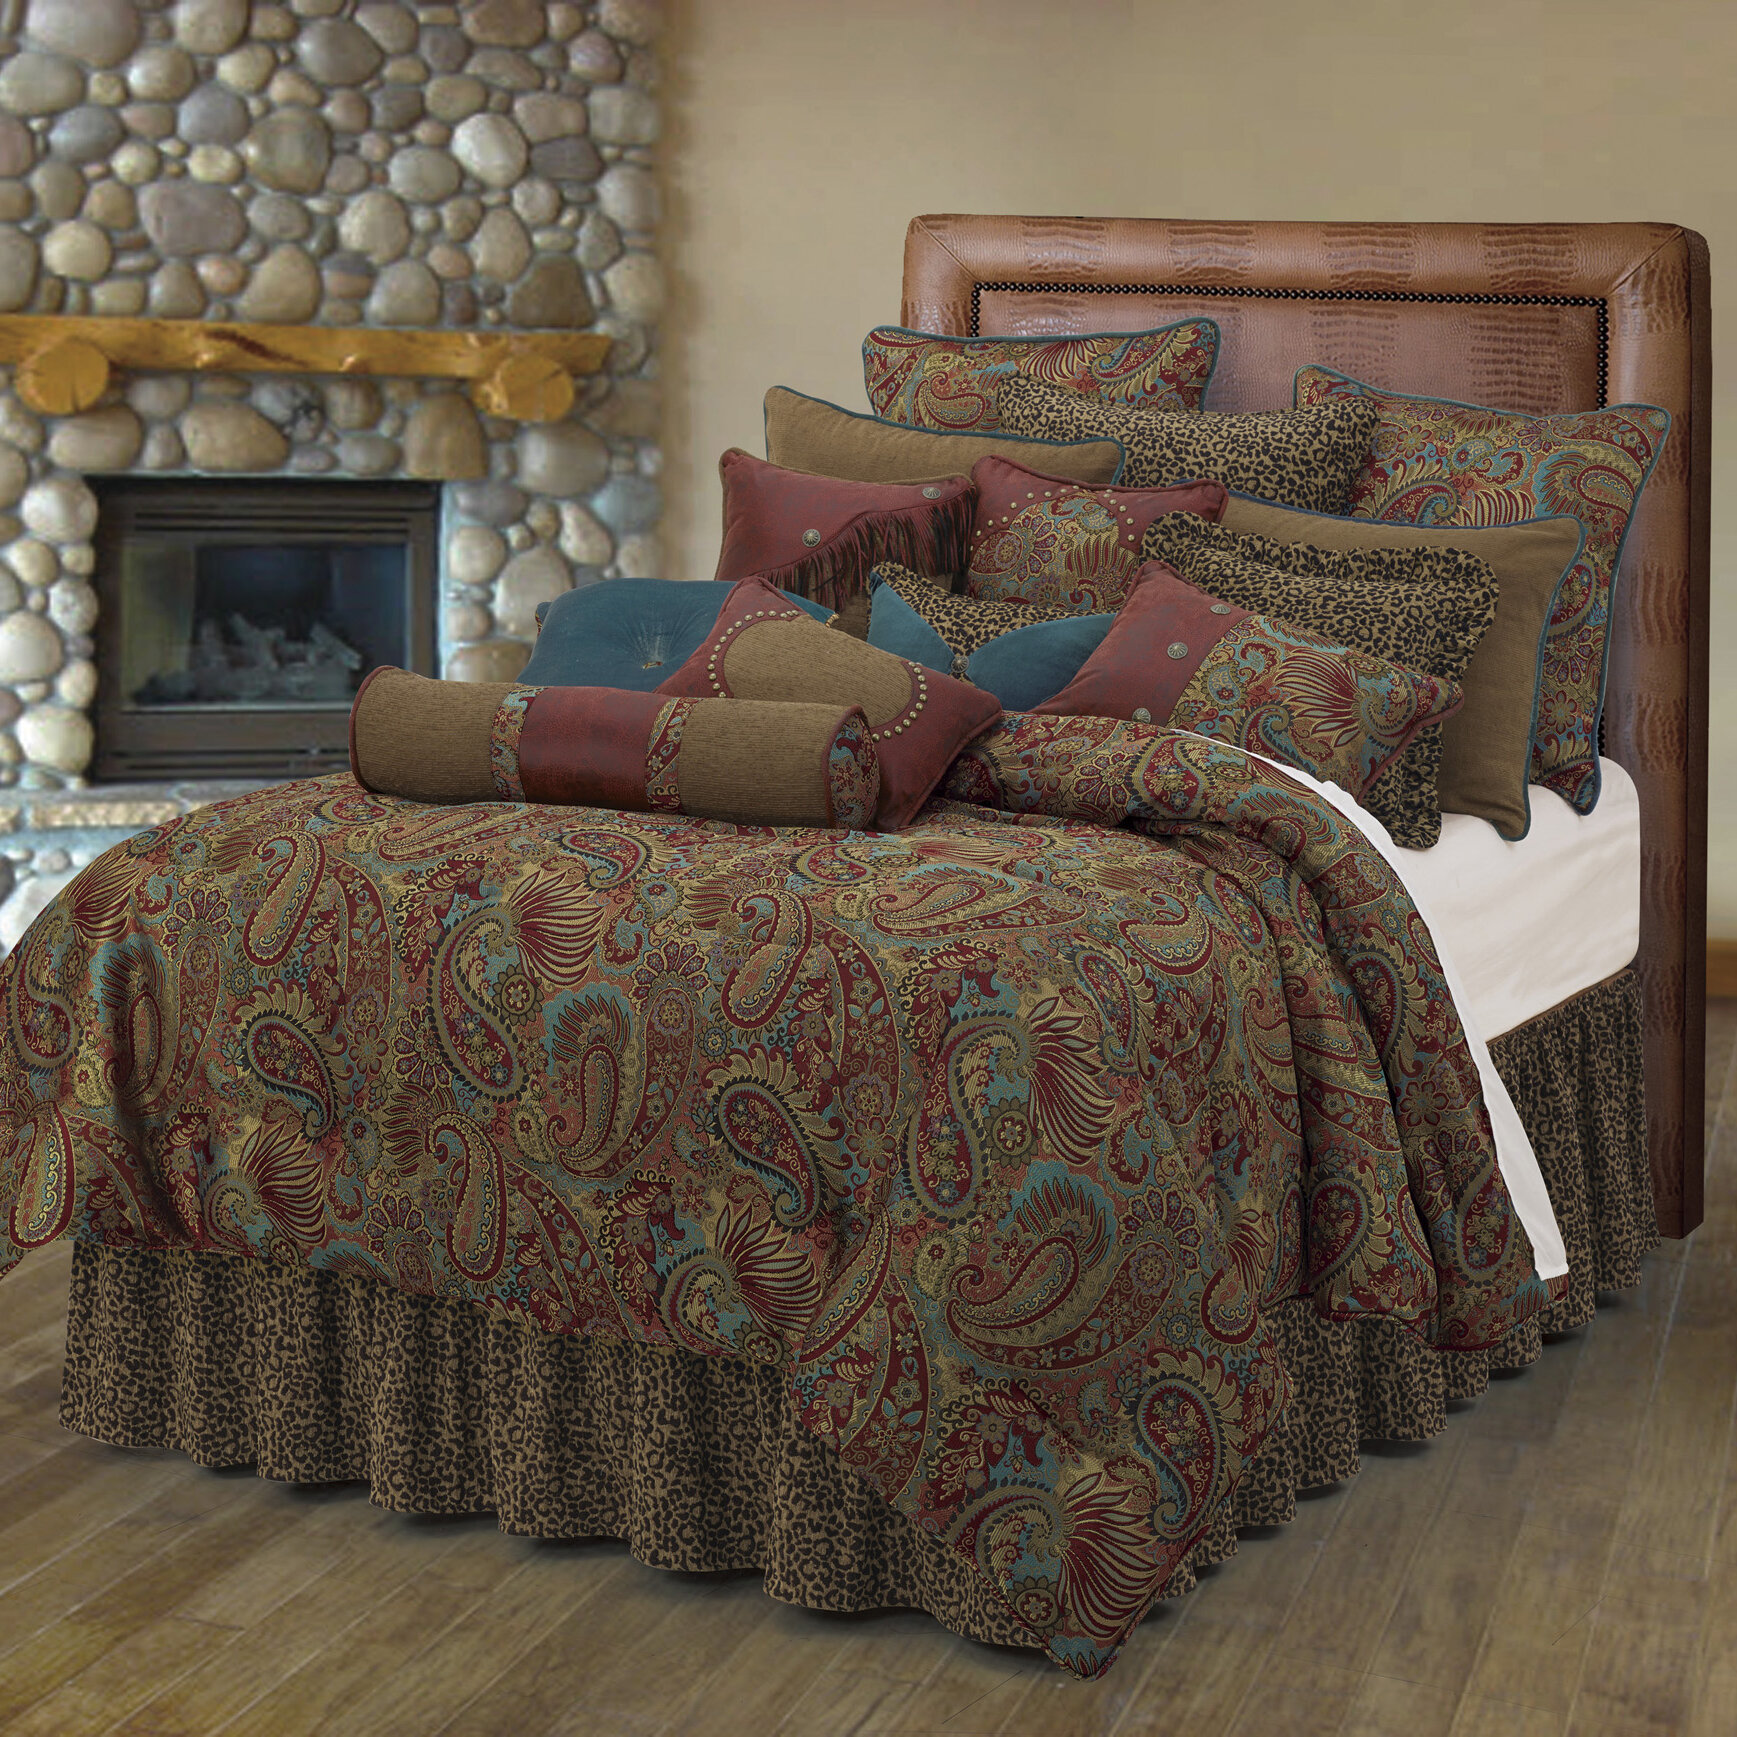 park polyester cfm comforter madison by product with piece wellington piping set jacquard master paisley hayneedle